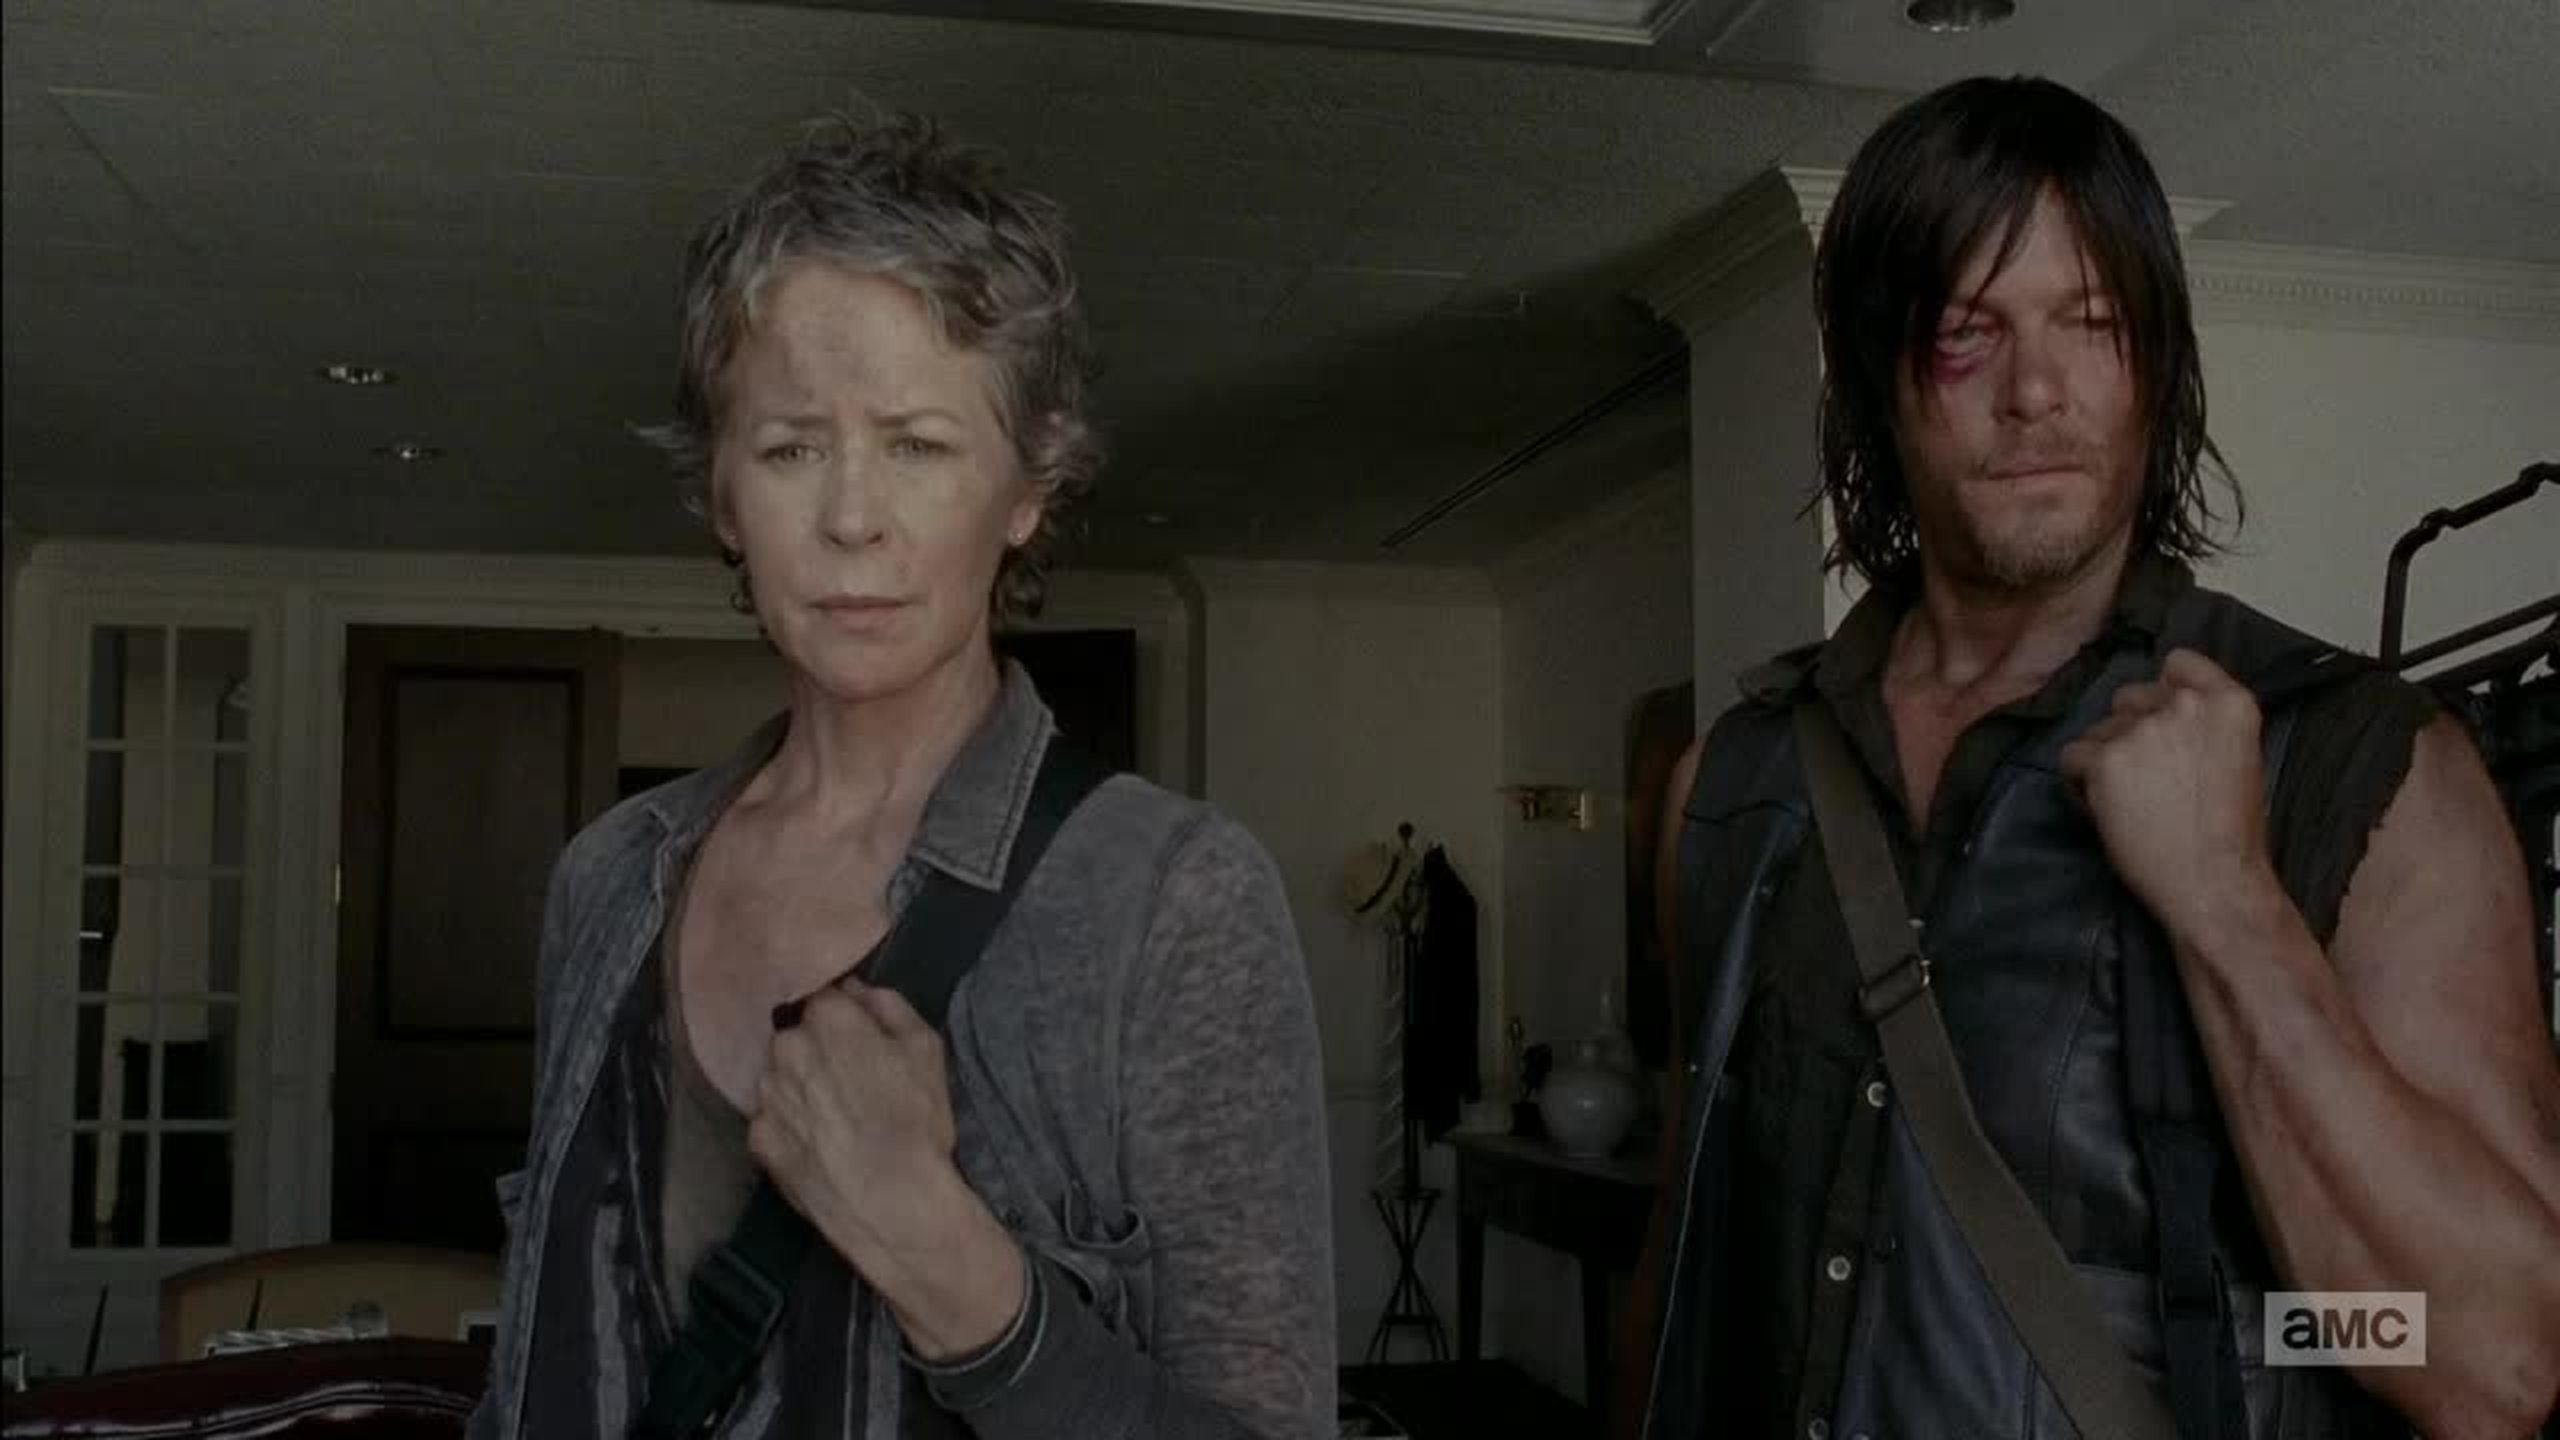 How come her hair is still short and his so long ? Does she know a hairdresser she doesn't want Daryl to meet or what ?